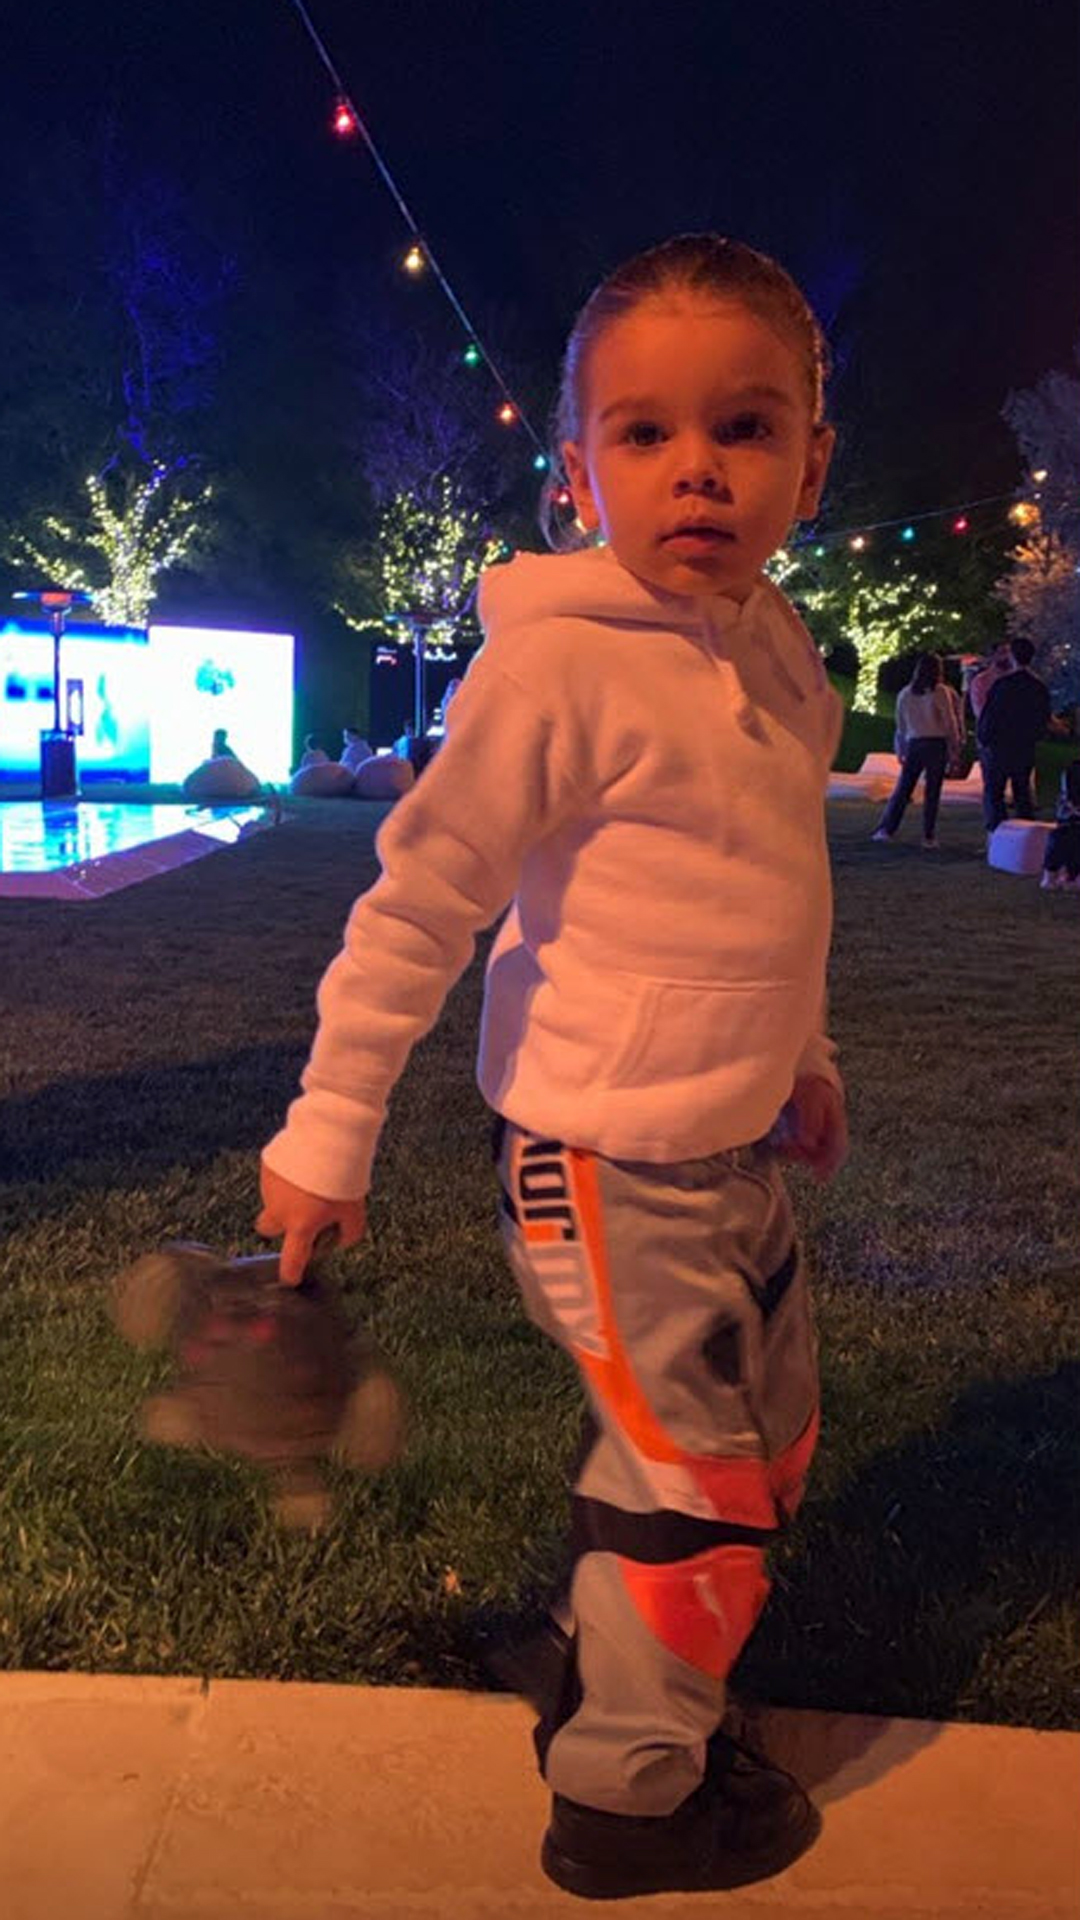 Kourtney Throws Sons a Fortnite-Themed Birthday Party - Mason was joined by younger brother, Reign, whom he shares a birthday with. Reign looked adorable in a sporty outfit with his hair pulled back in a ponytail.